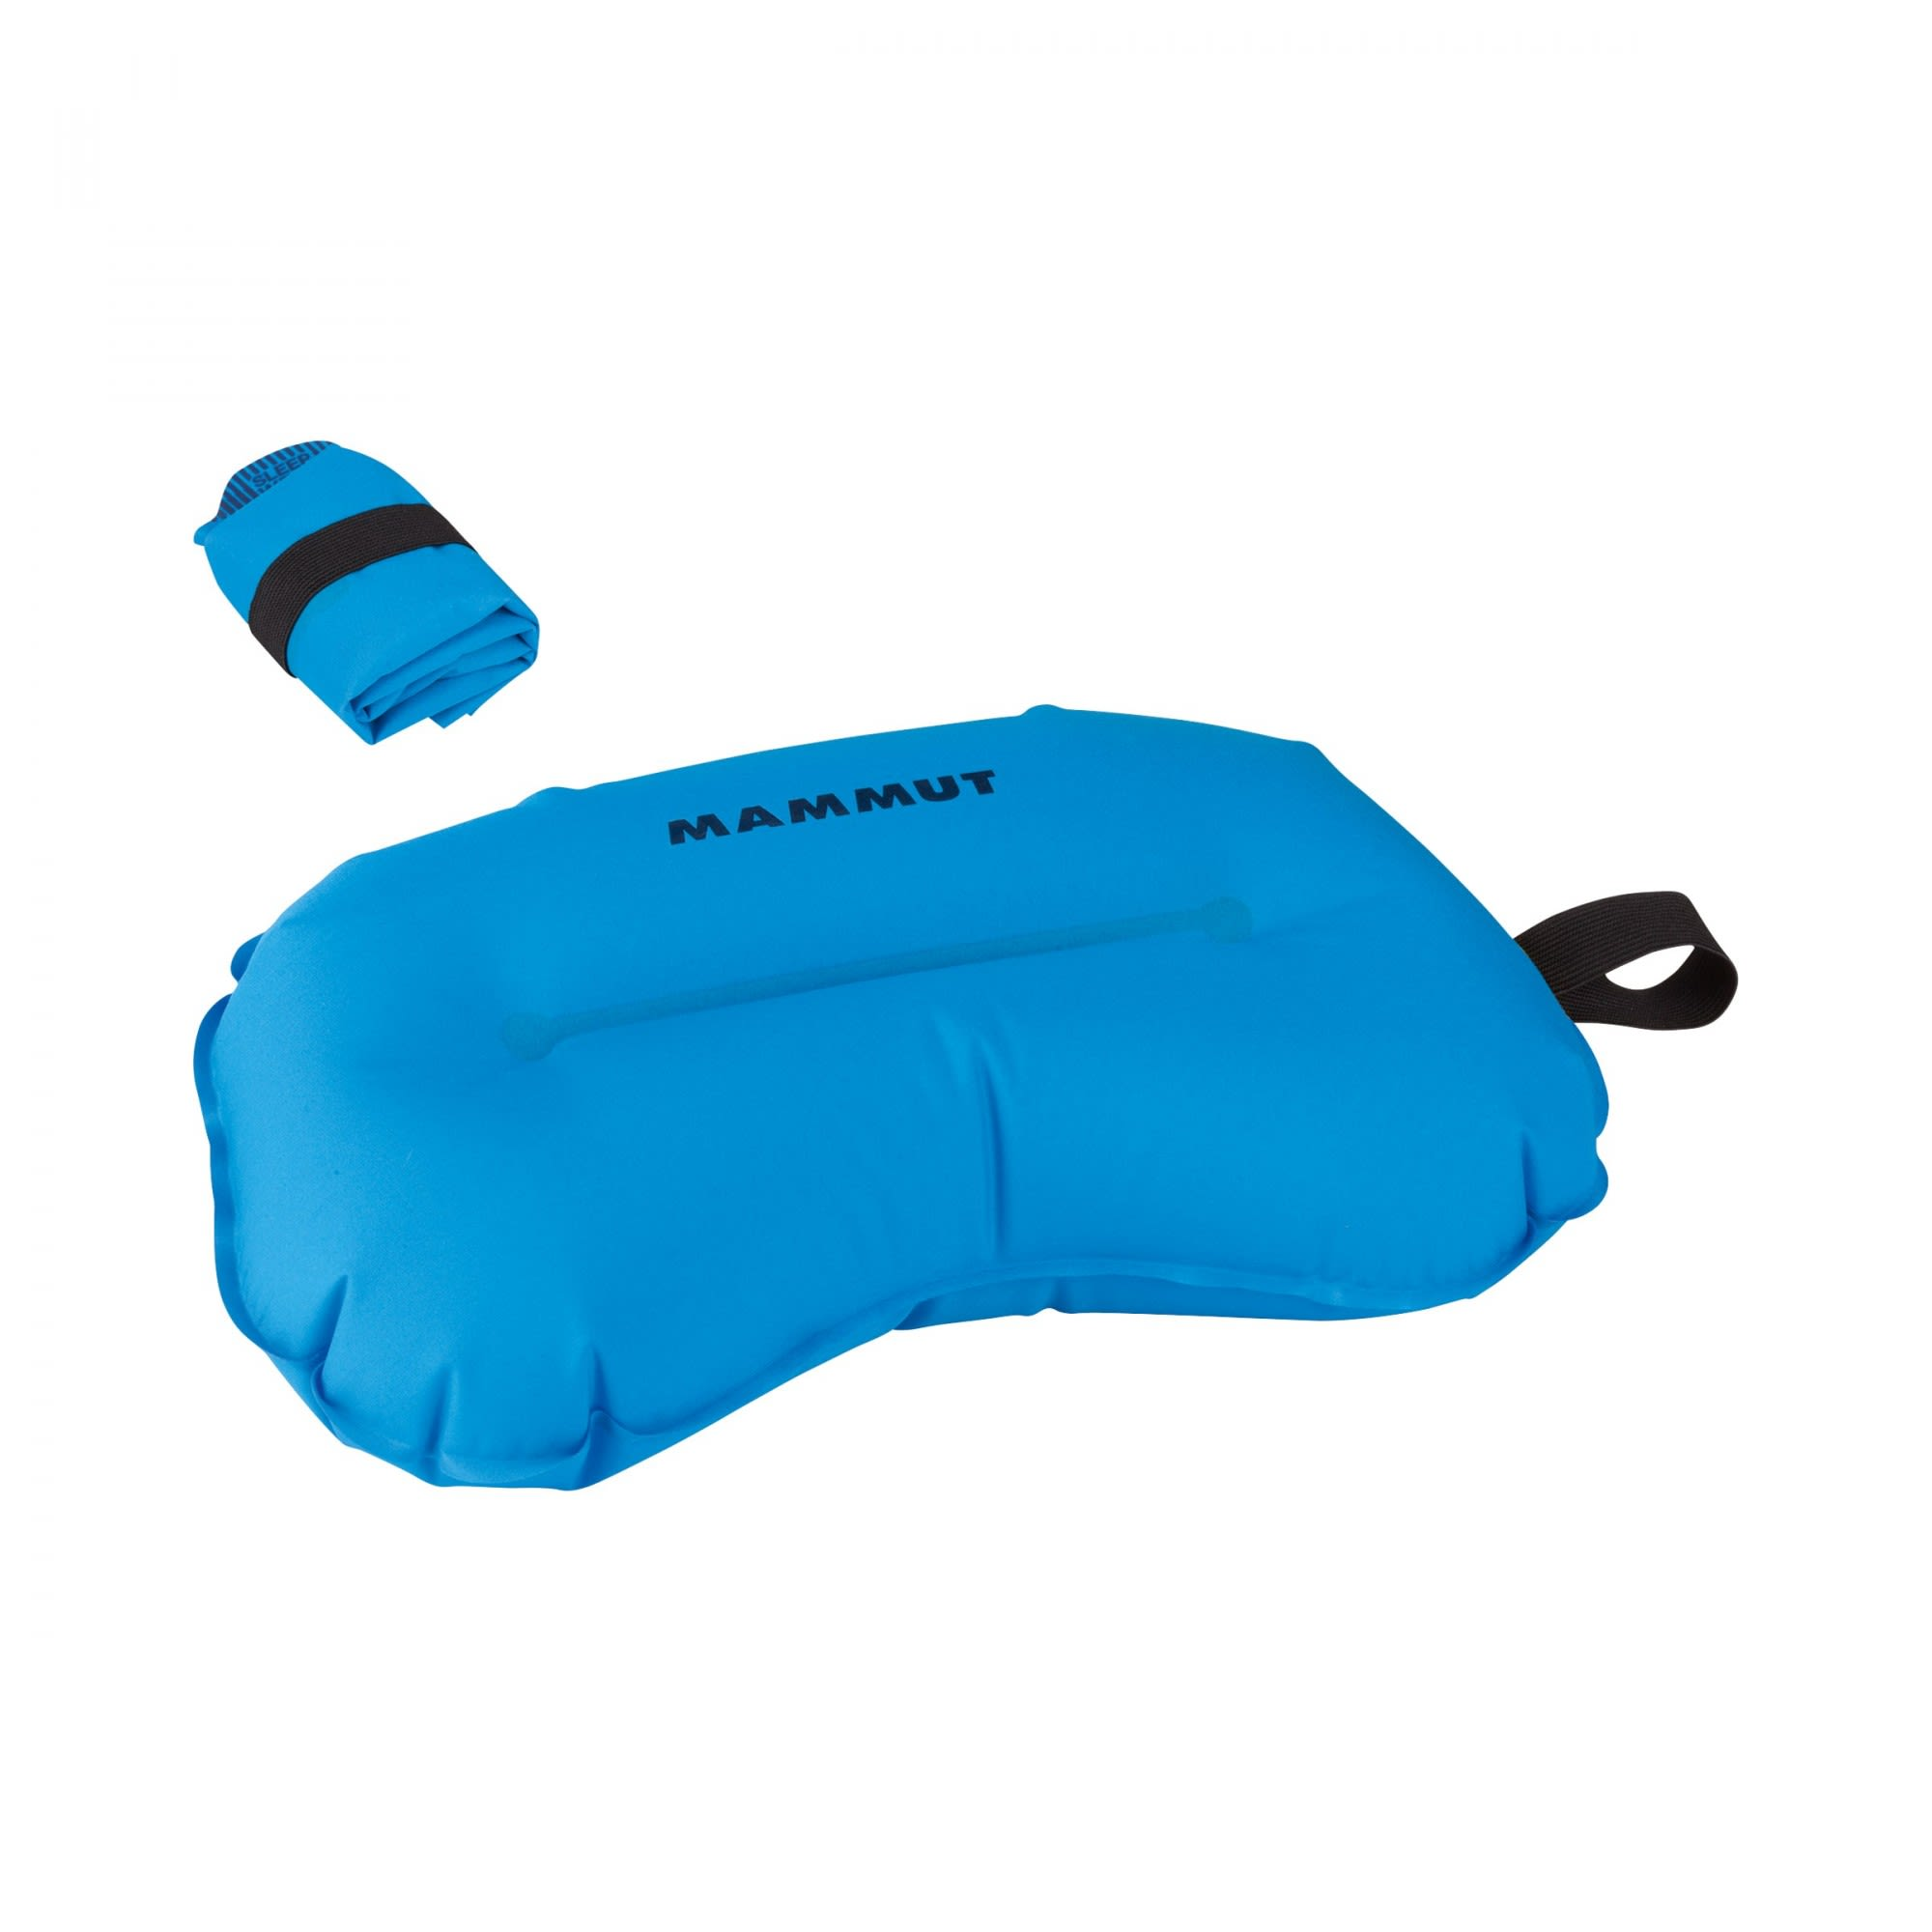 Mammut Air Pillow Blau, Kissen, One Size